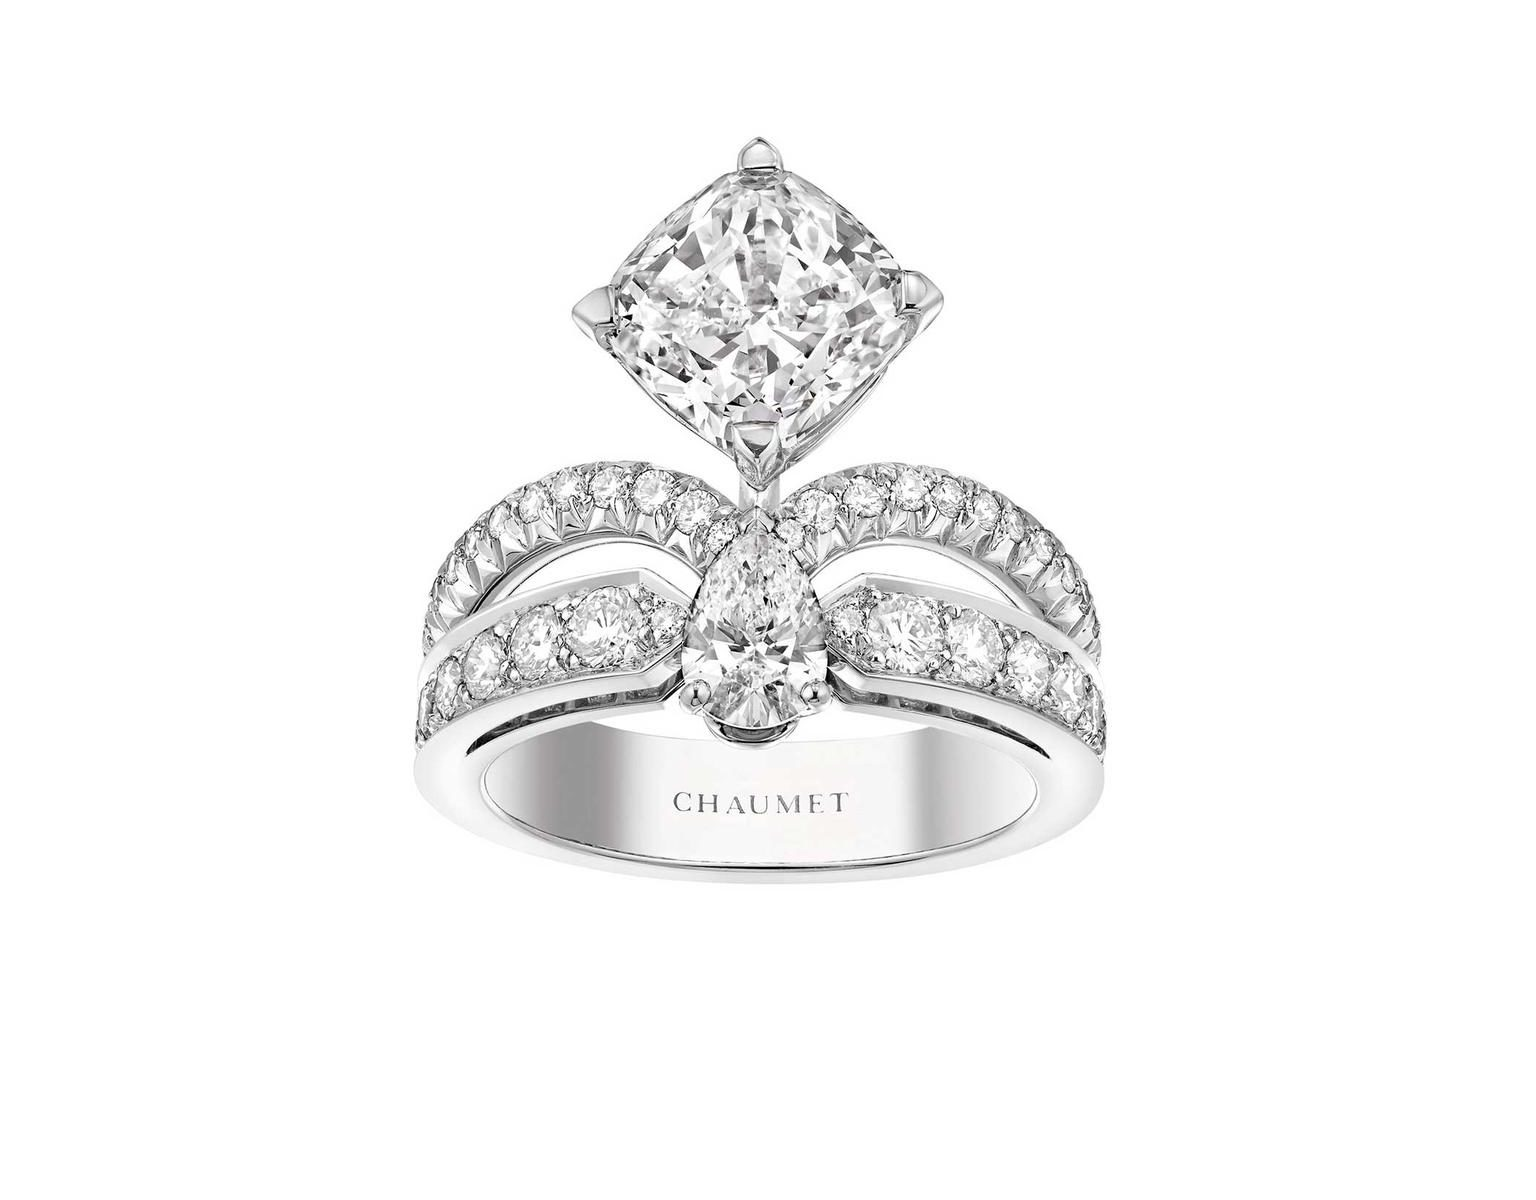 chaumet-eclat-floral-josephine-diamond-ring.jpg_1536x0_q75_crop-scale_subsampling-2_upscale-false.jpg